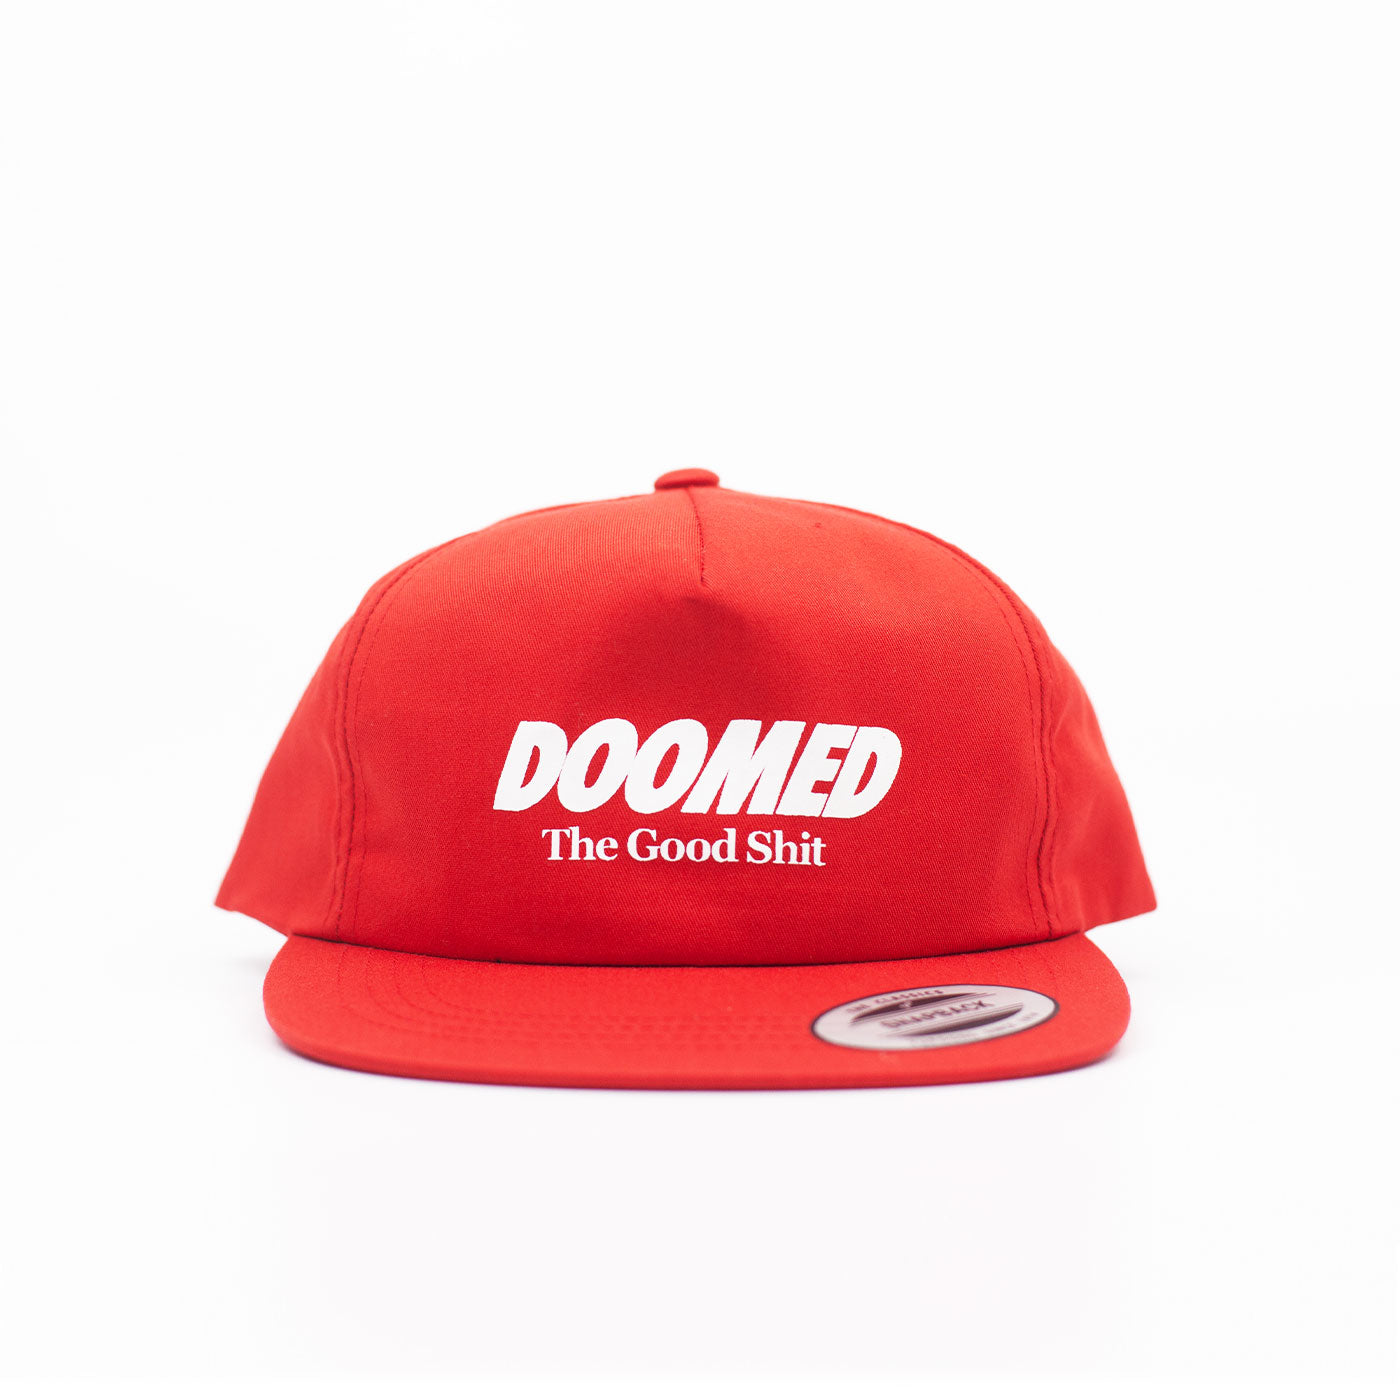 The Good Shit Snapback Red